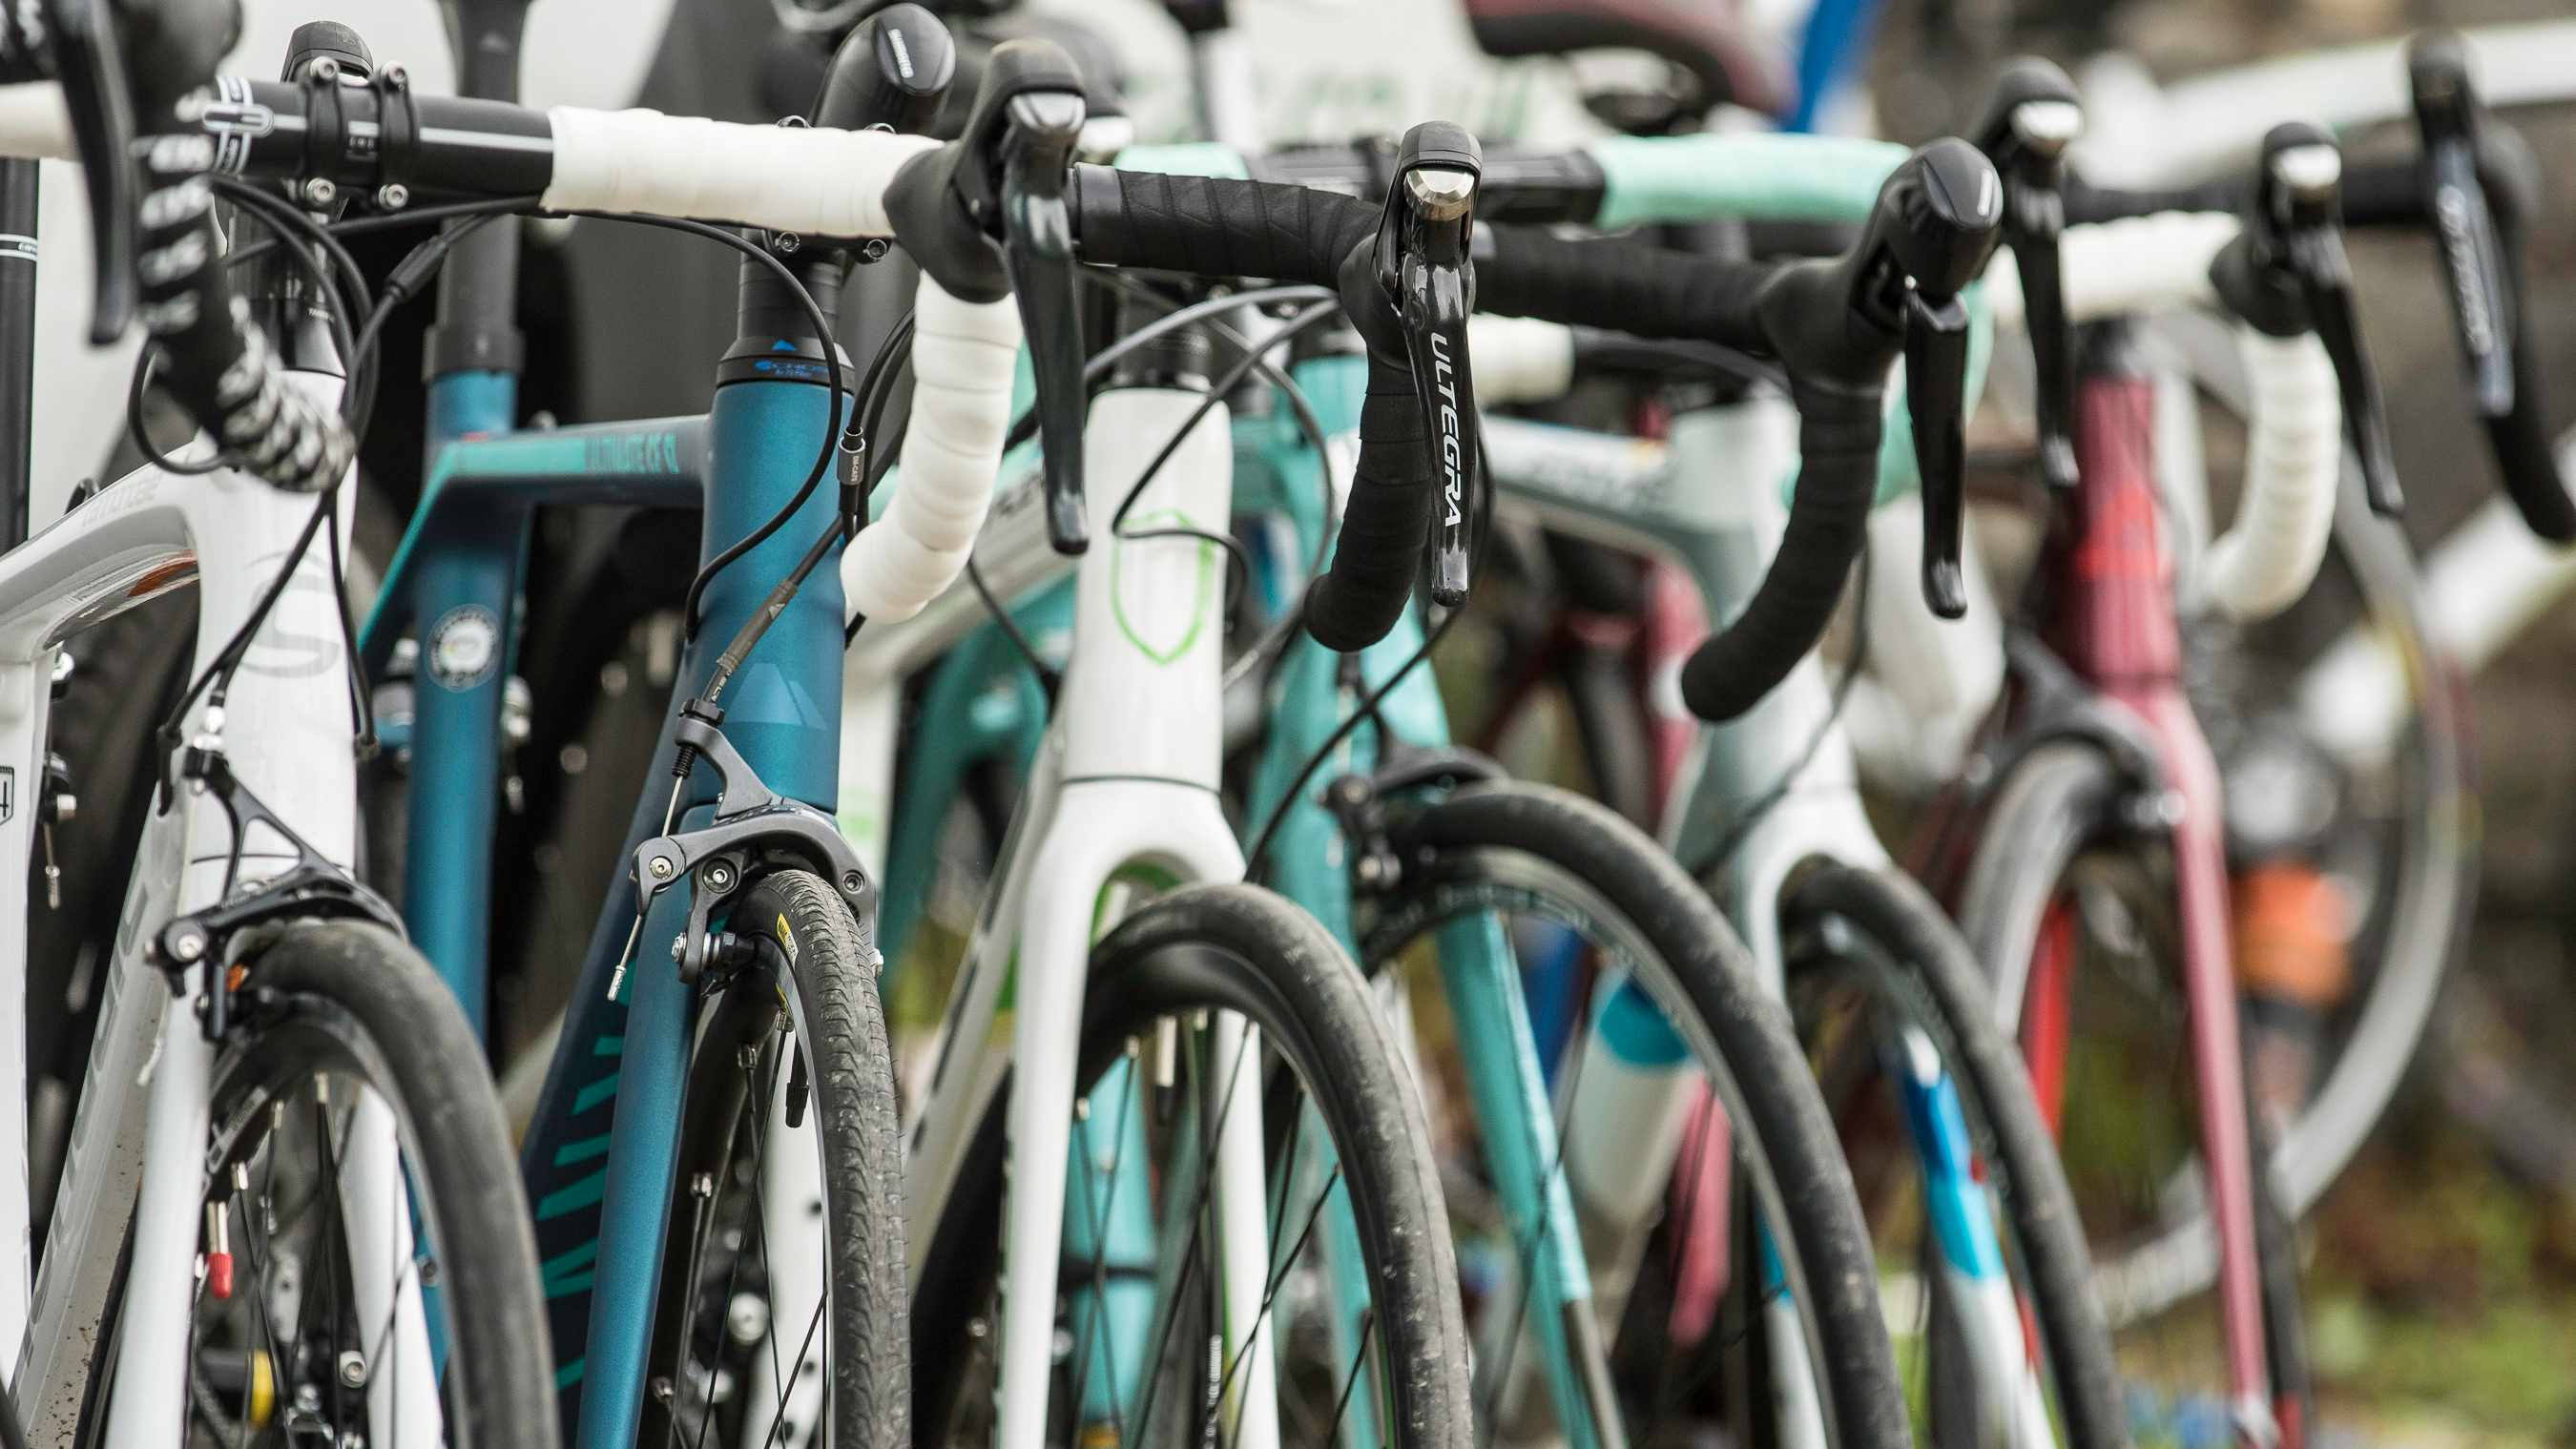 Some of the women's specific road bikes tested as part of the BikeRadar Women's Road Bike of the Year Awards